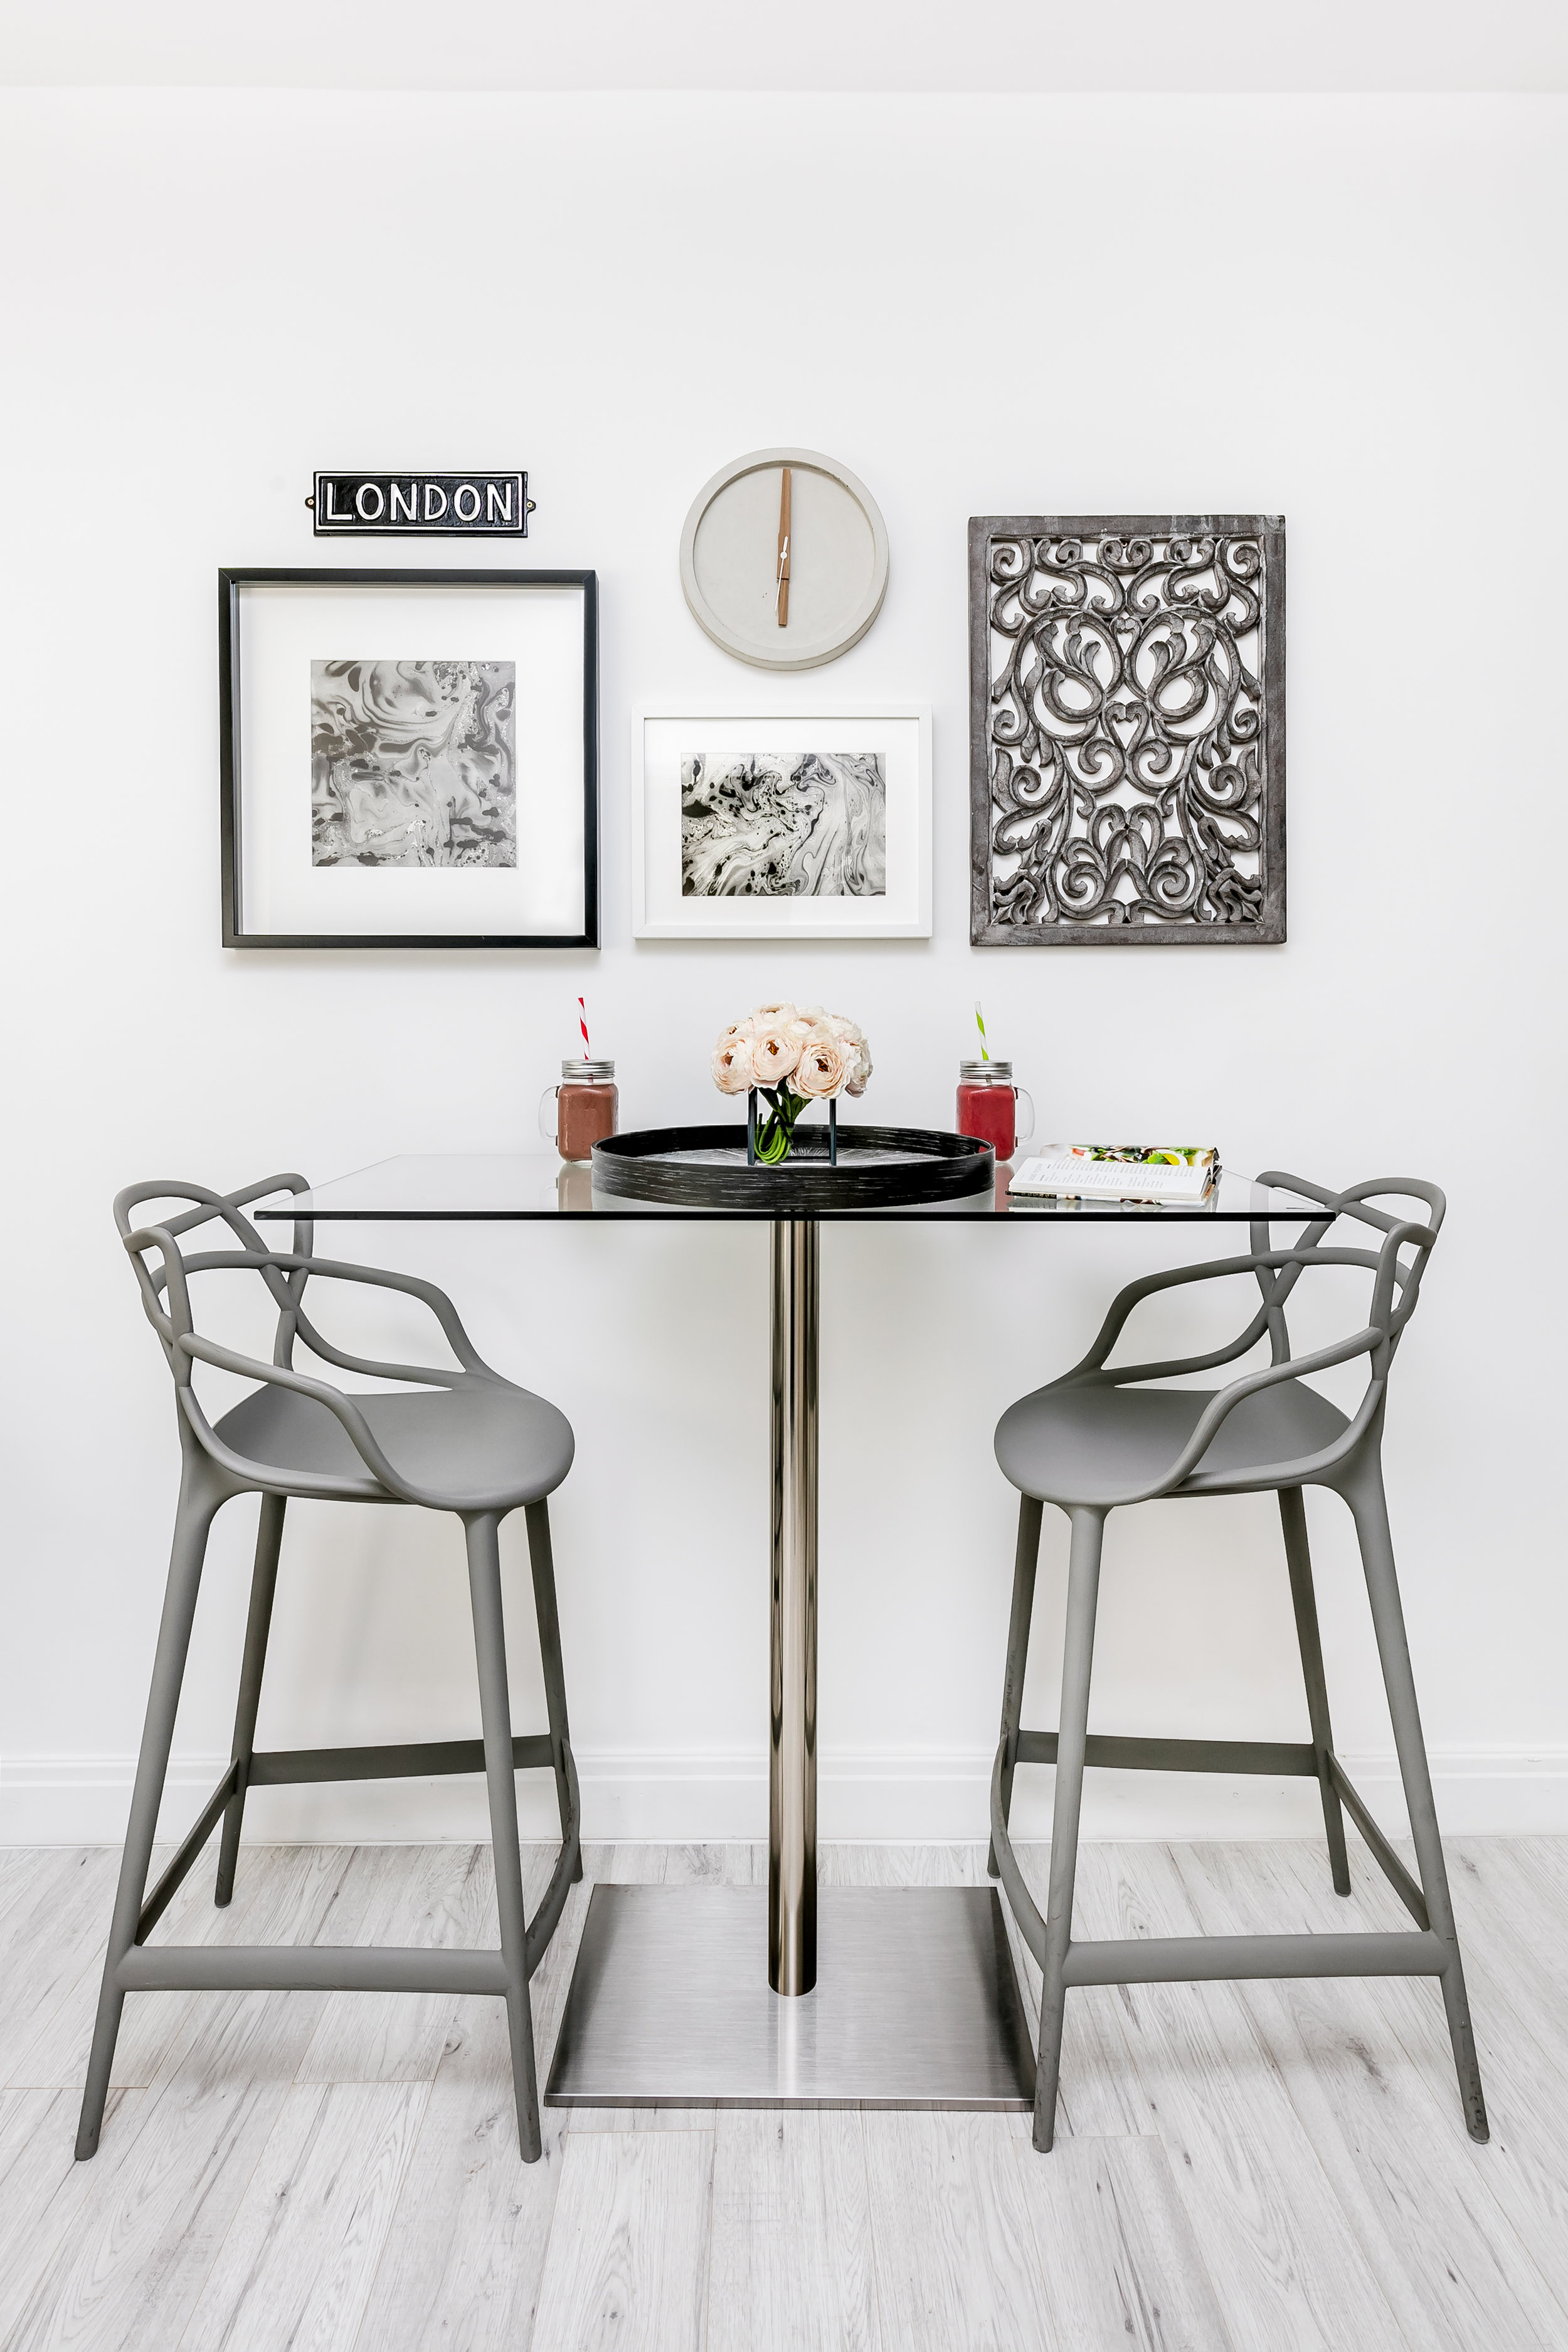 TIP  - Arranging wall hangings around the Breakfast Bar focuses the space.